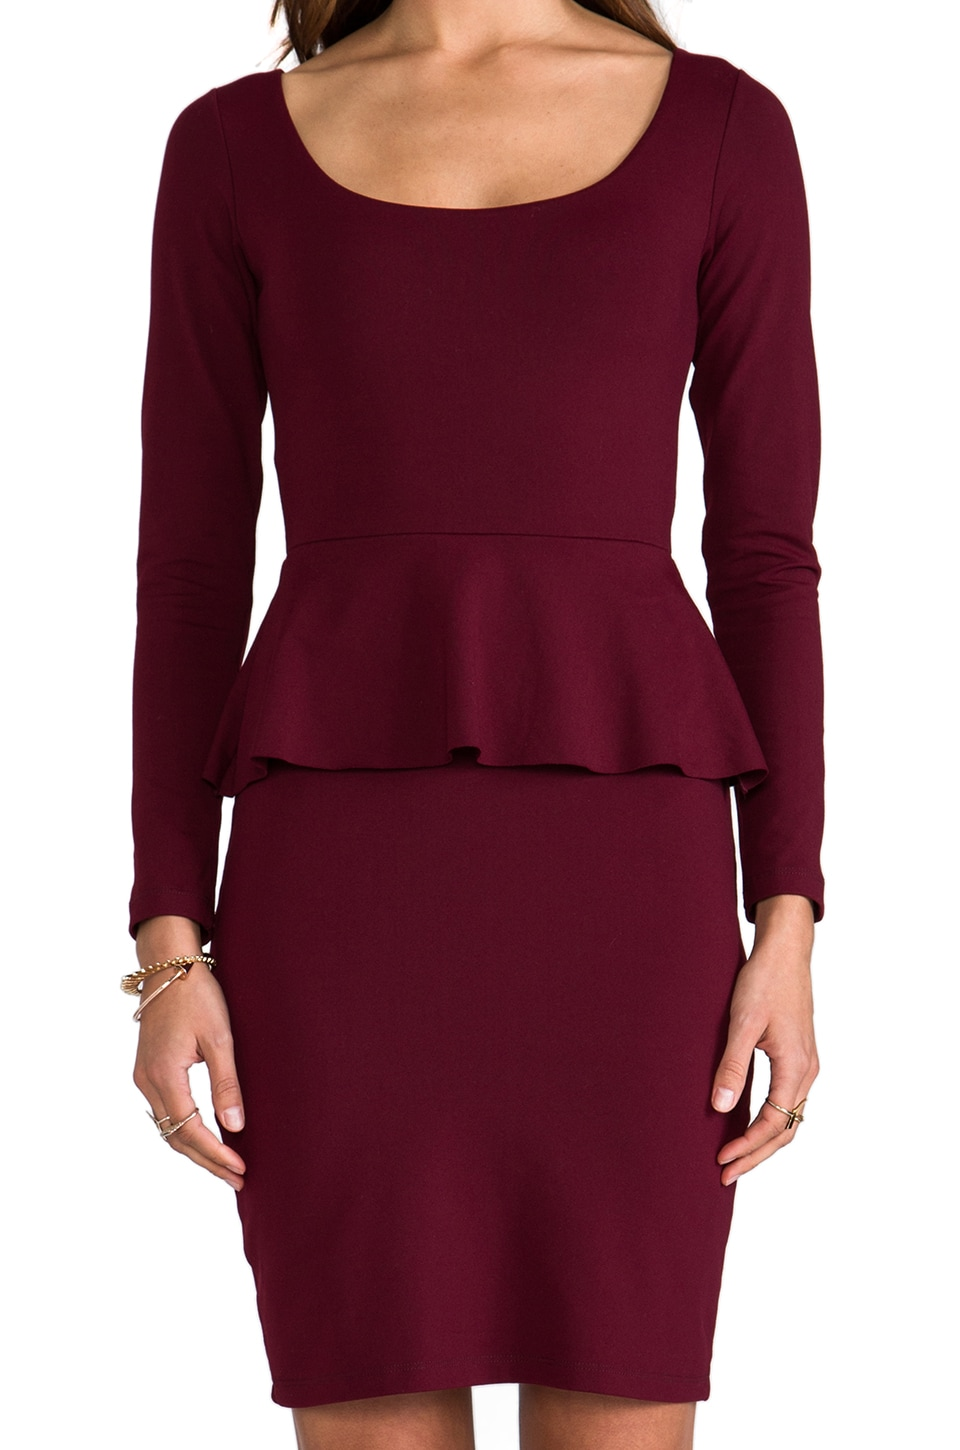 "Susana Monaco Catherine 22"" Dress in Oxblood"